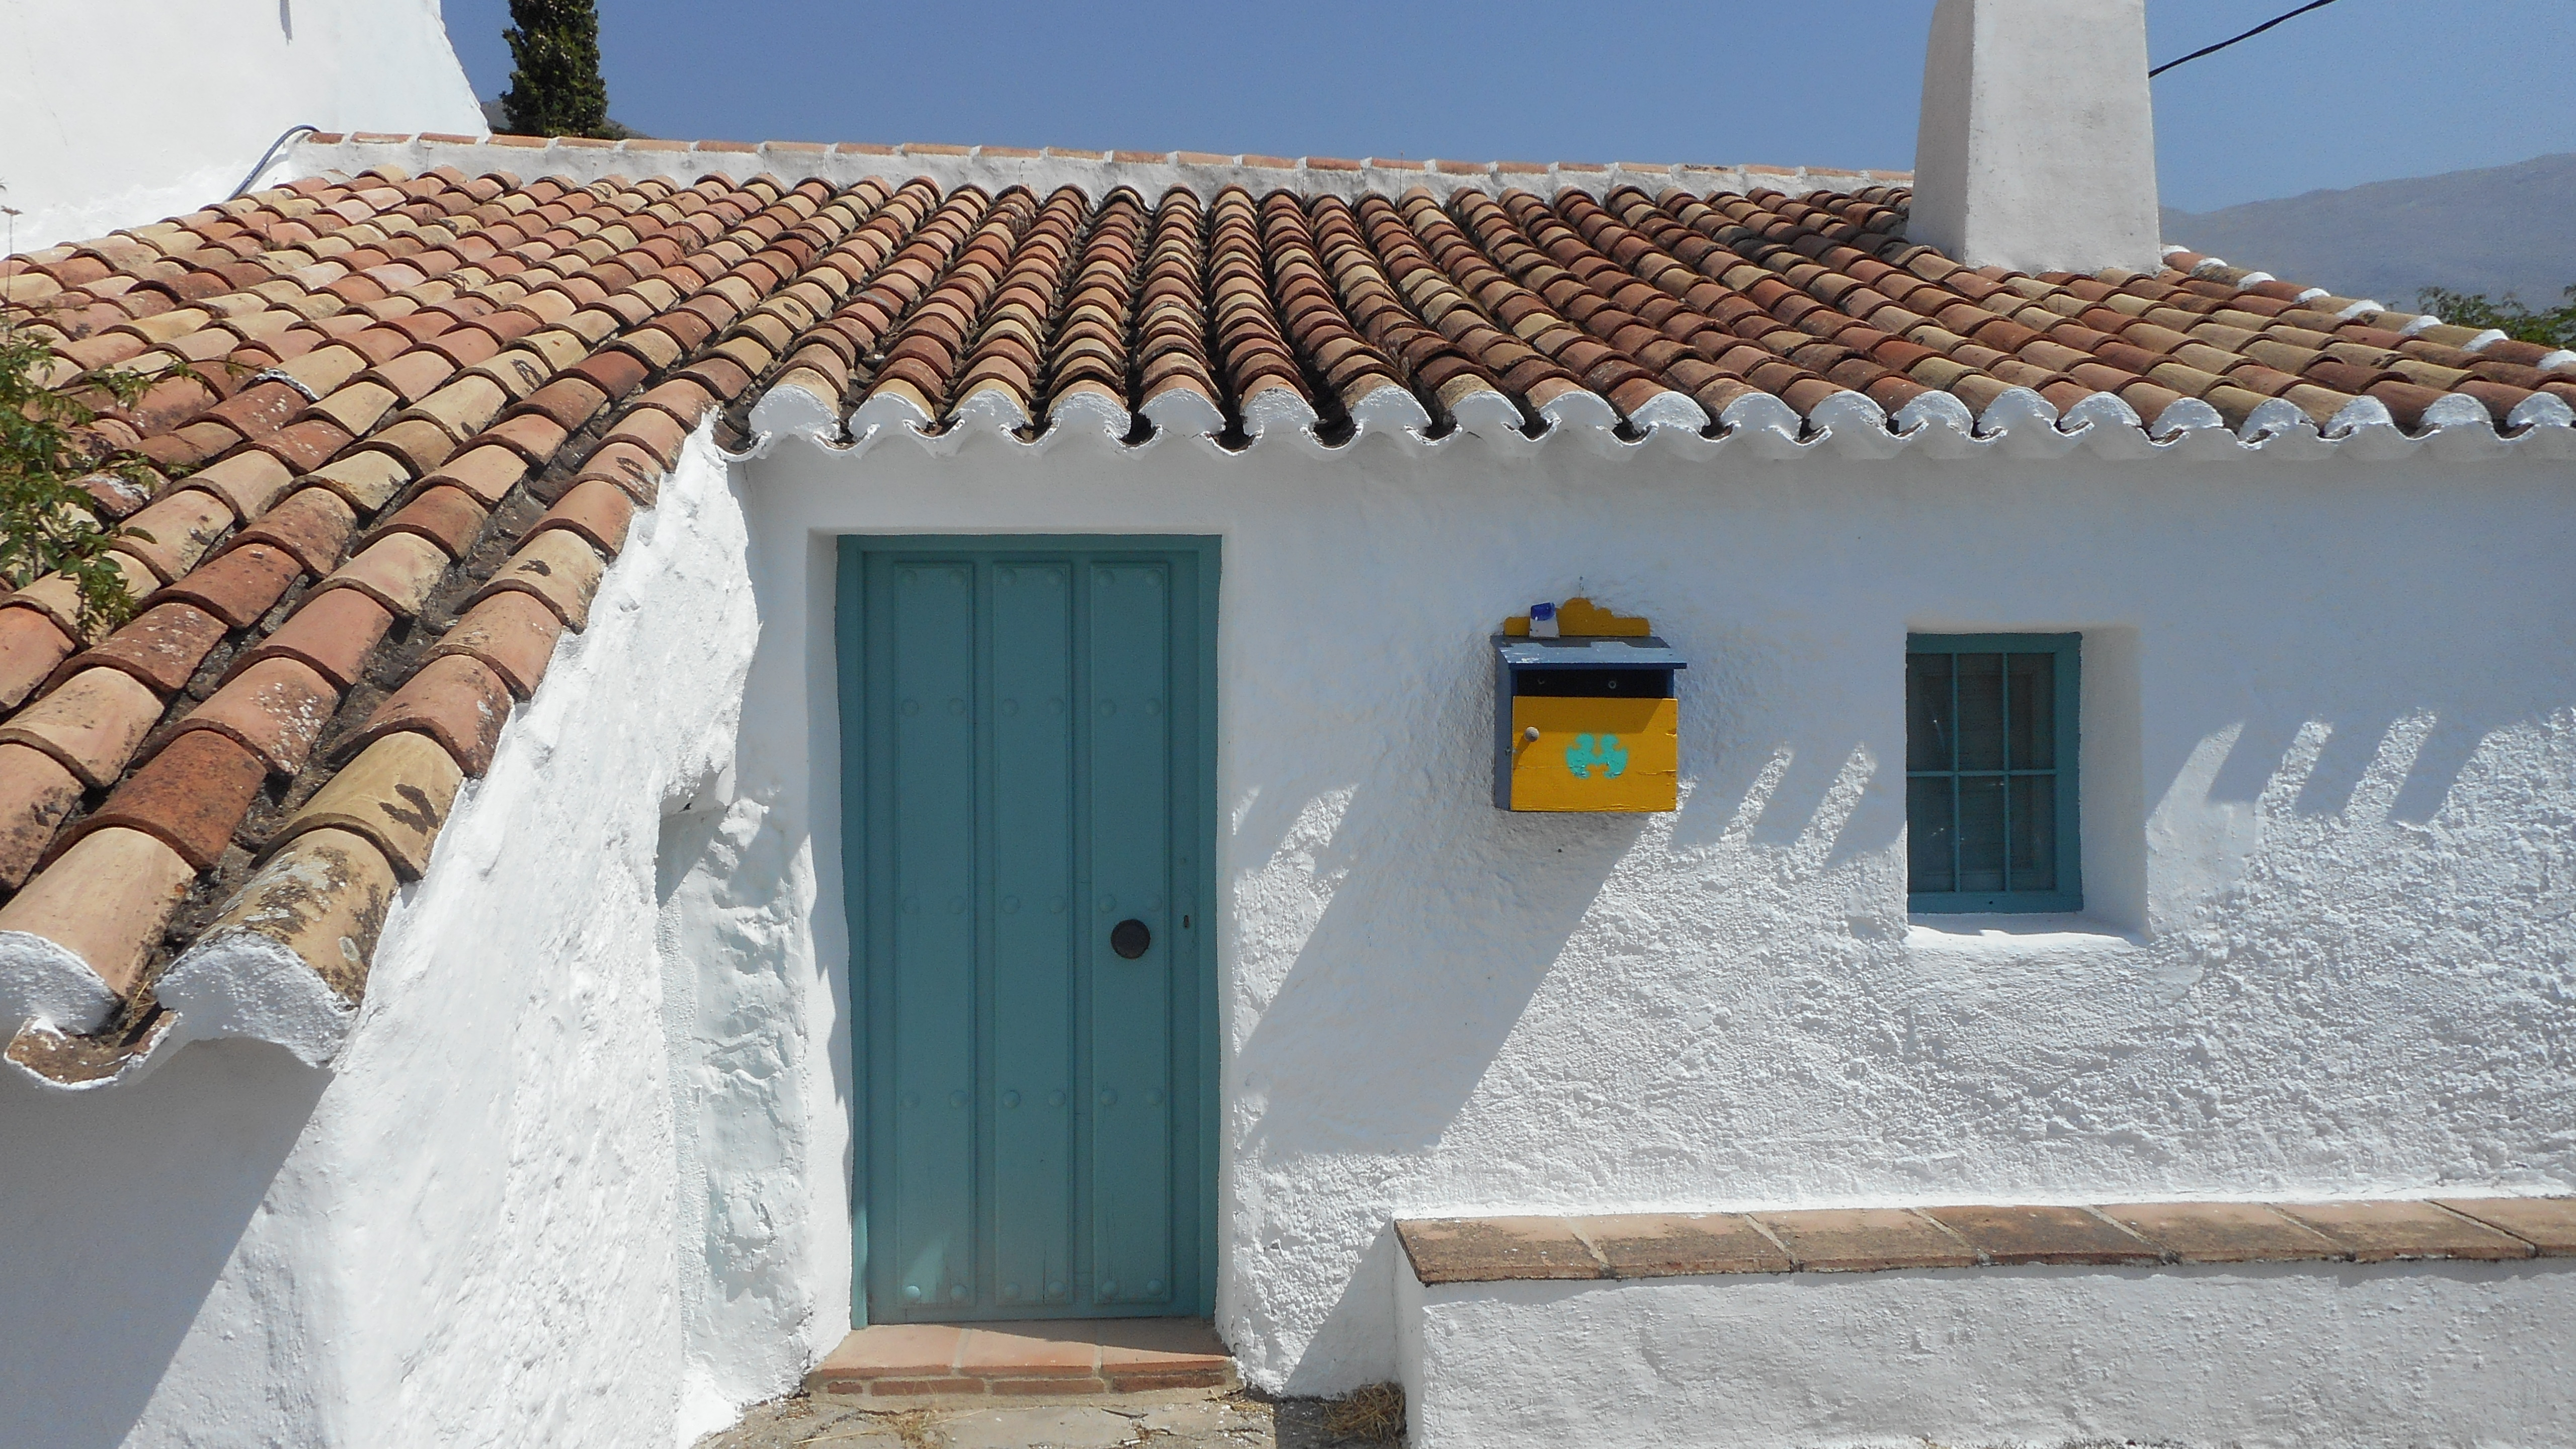 3 BEDROOM FINCA NEAR PERIANA